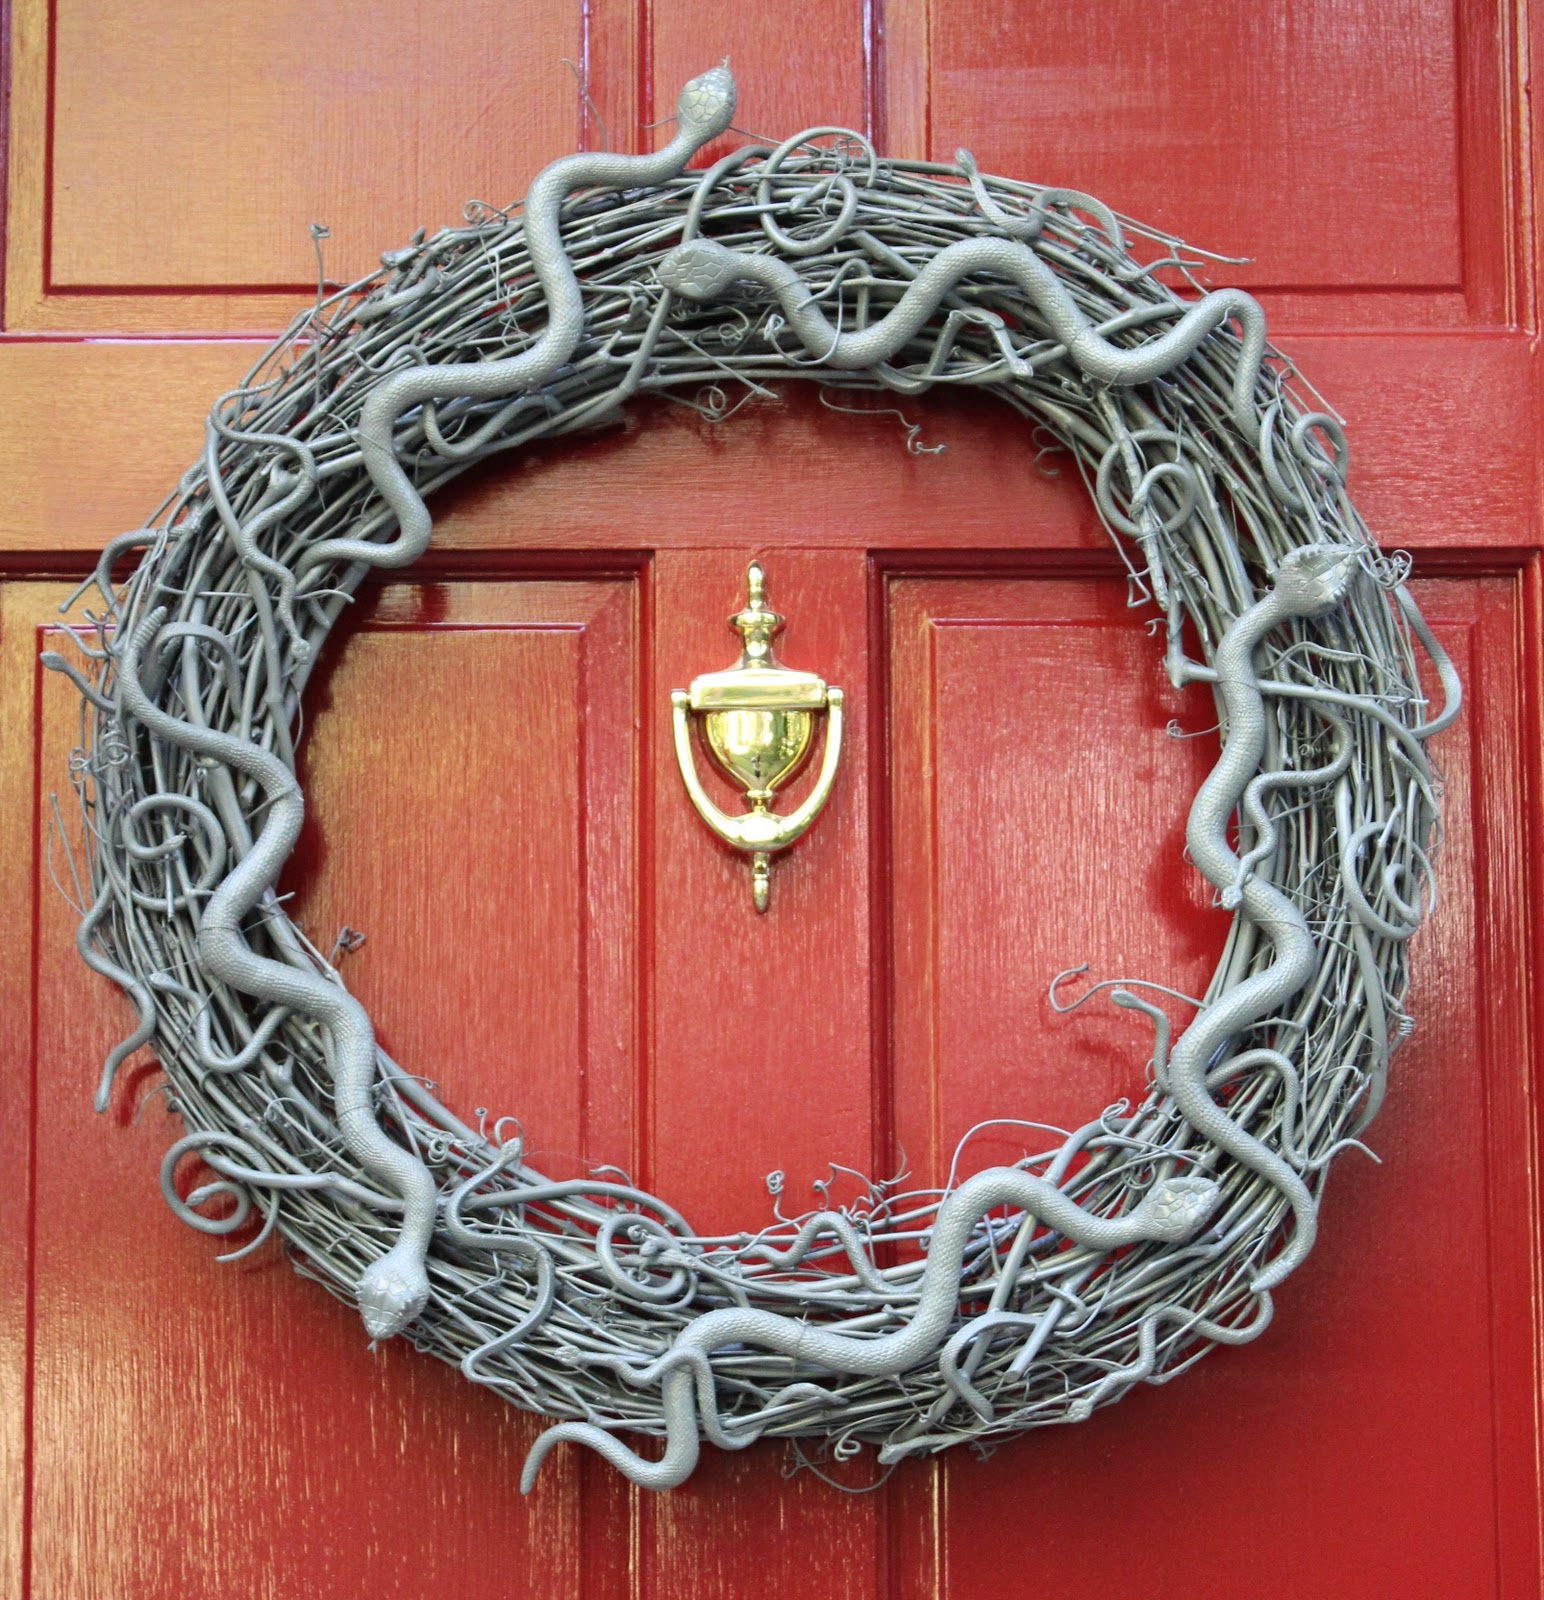 Booturtle S Show And Tell Snake Wreath